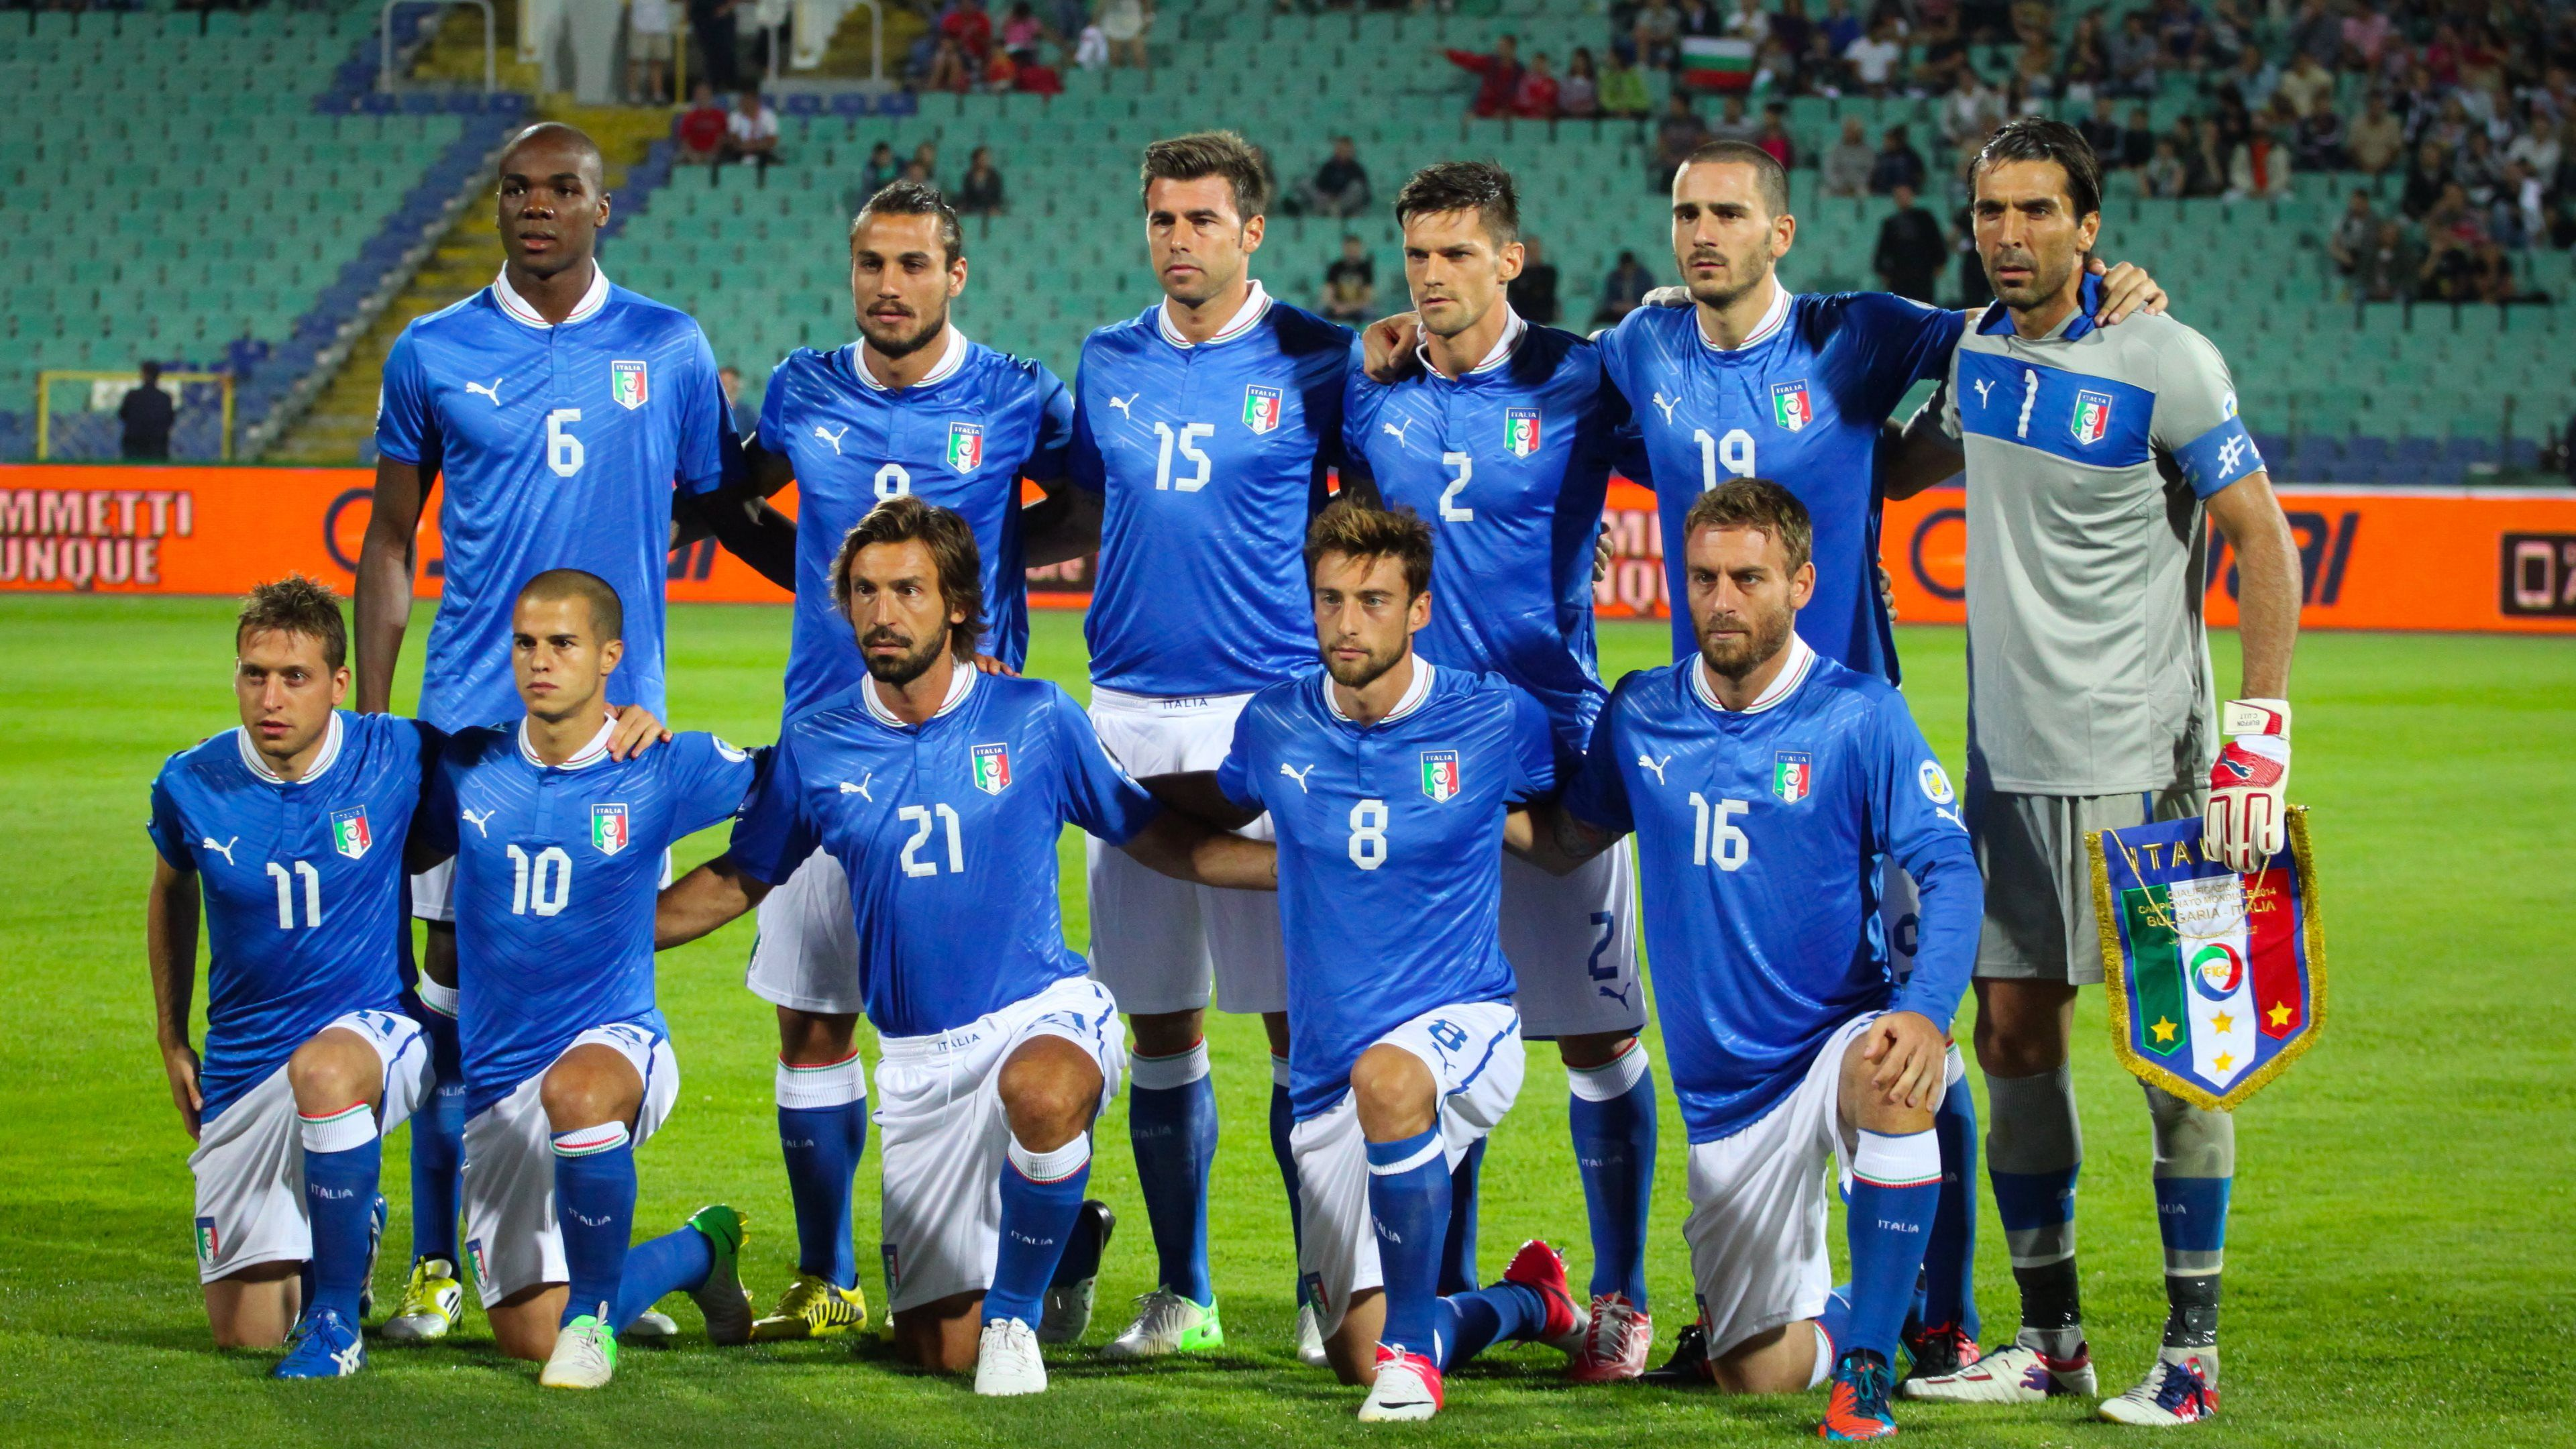 National Football Team of Italy wallpapers